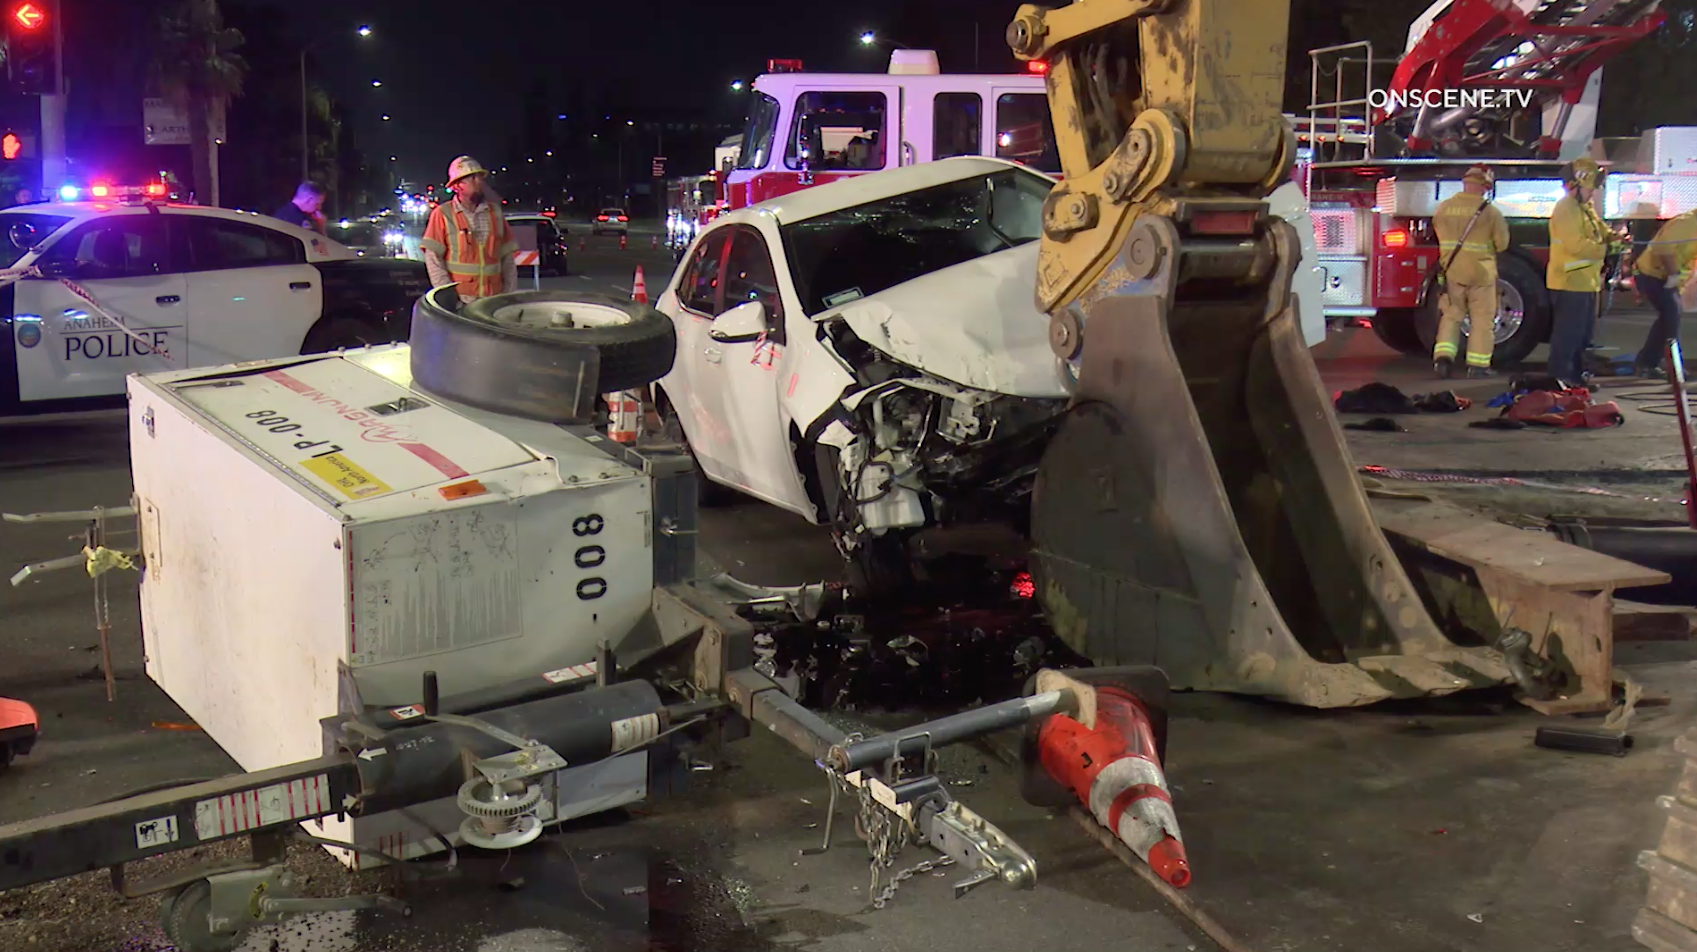 The aftermath of a crash in which a vehicle slammed into a construction site in Anaheim is seen on July 29, 2019. (Credit: ONSCENE.TV)